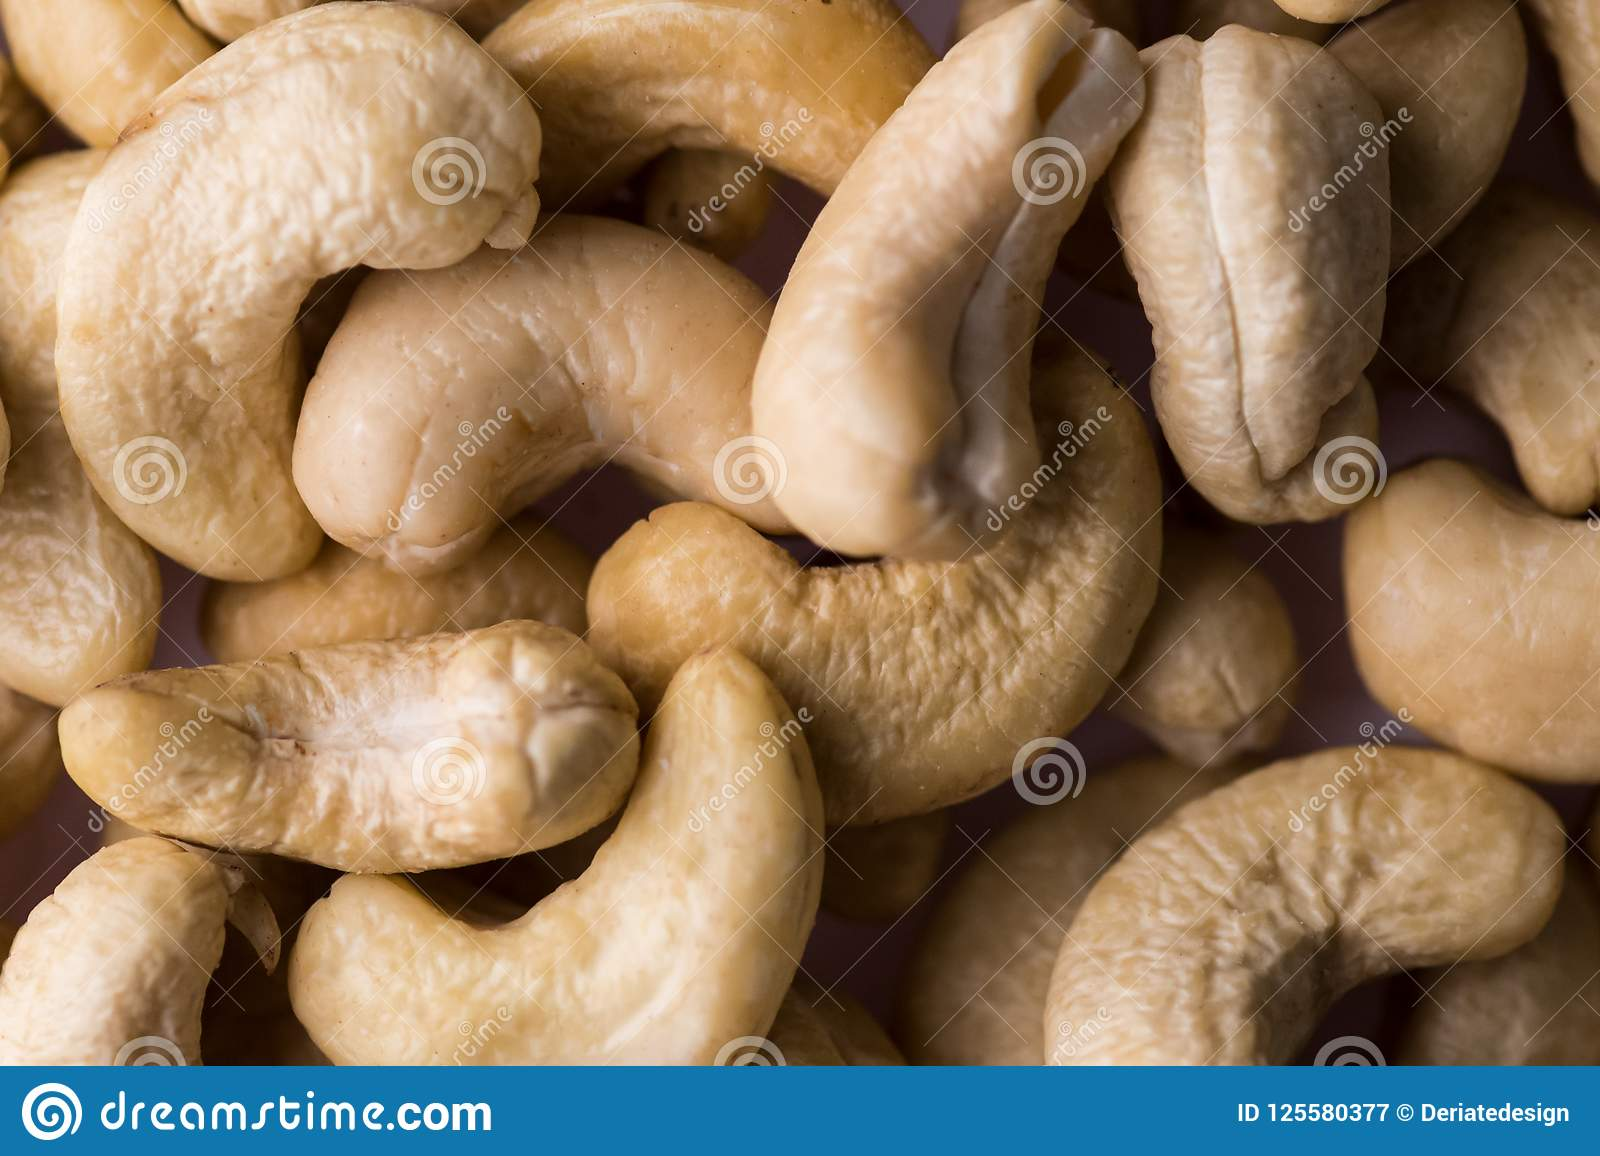 Nuts, cashew, tasty and healthy food with lots of vitamins. Close up view, selective focus over the nuts